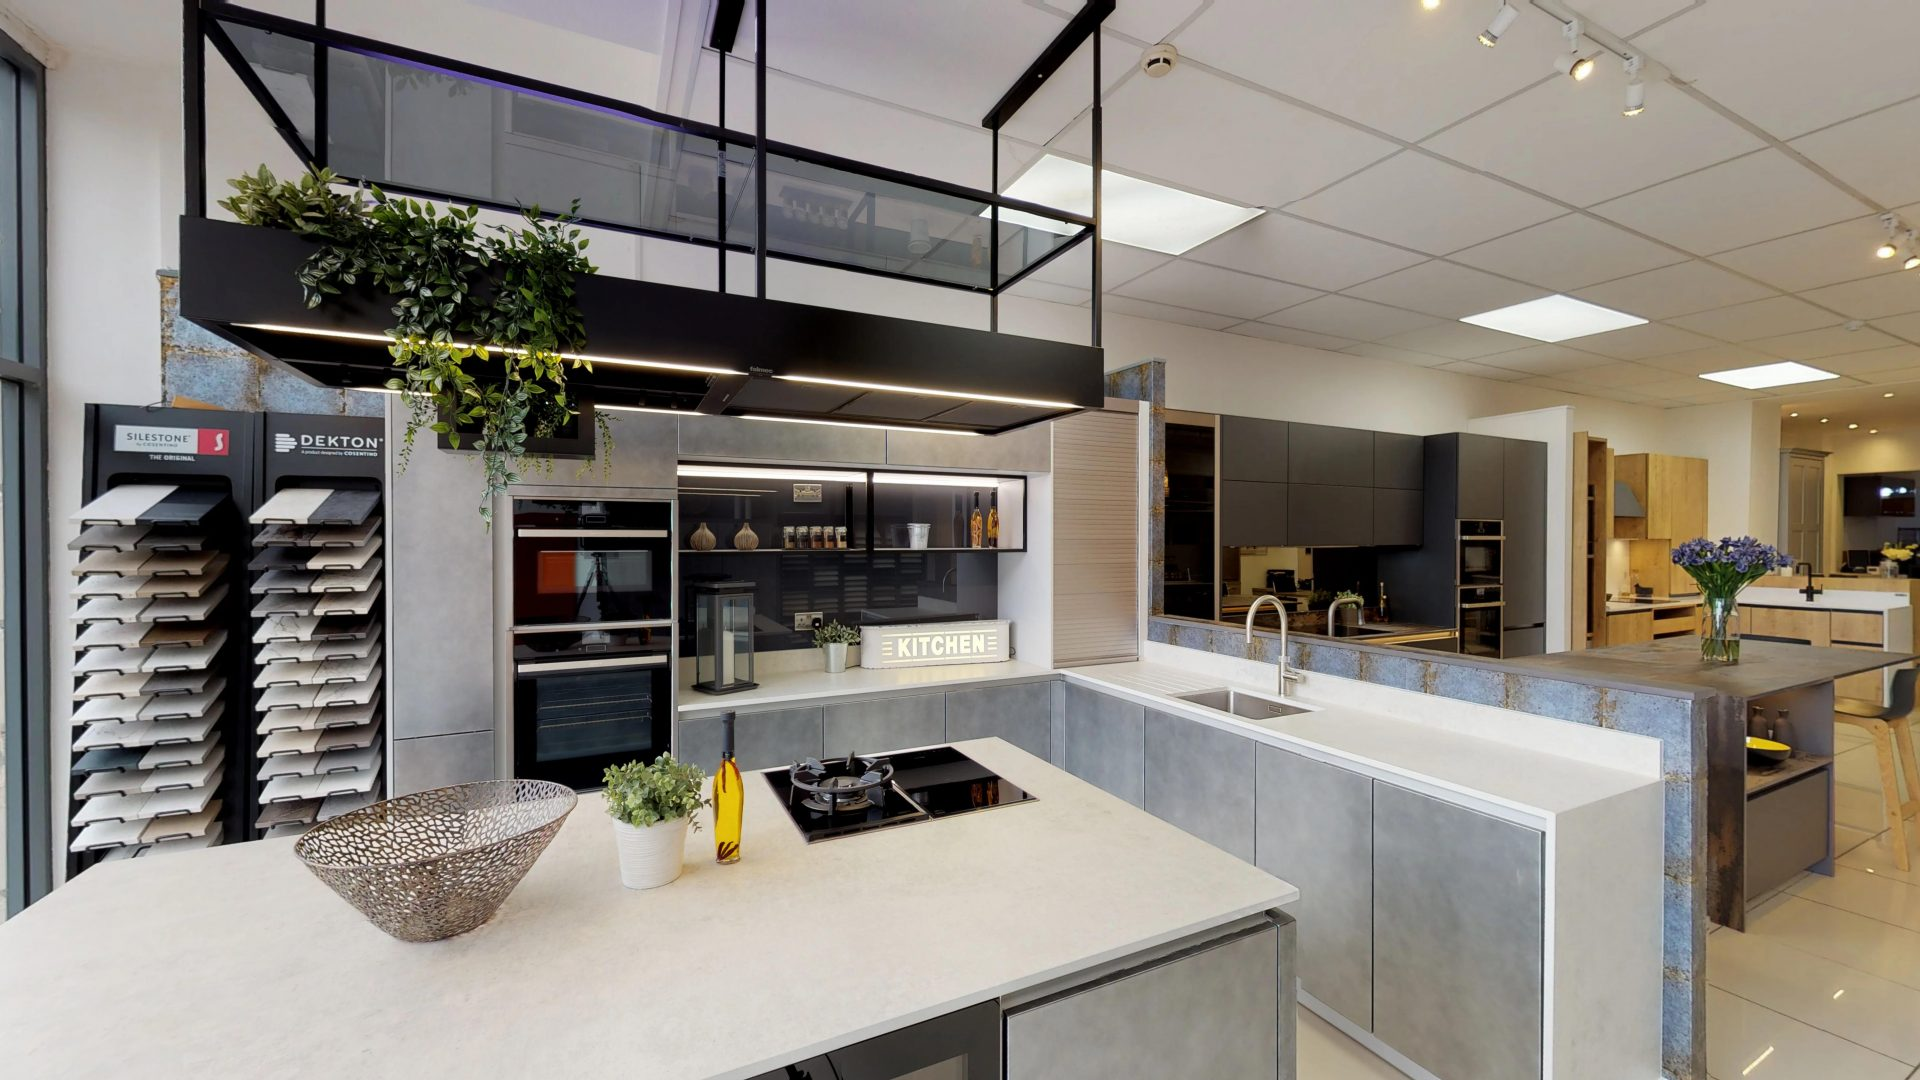 The-Kitchen-Partners-04292019_150105